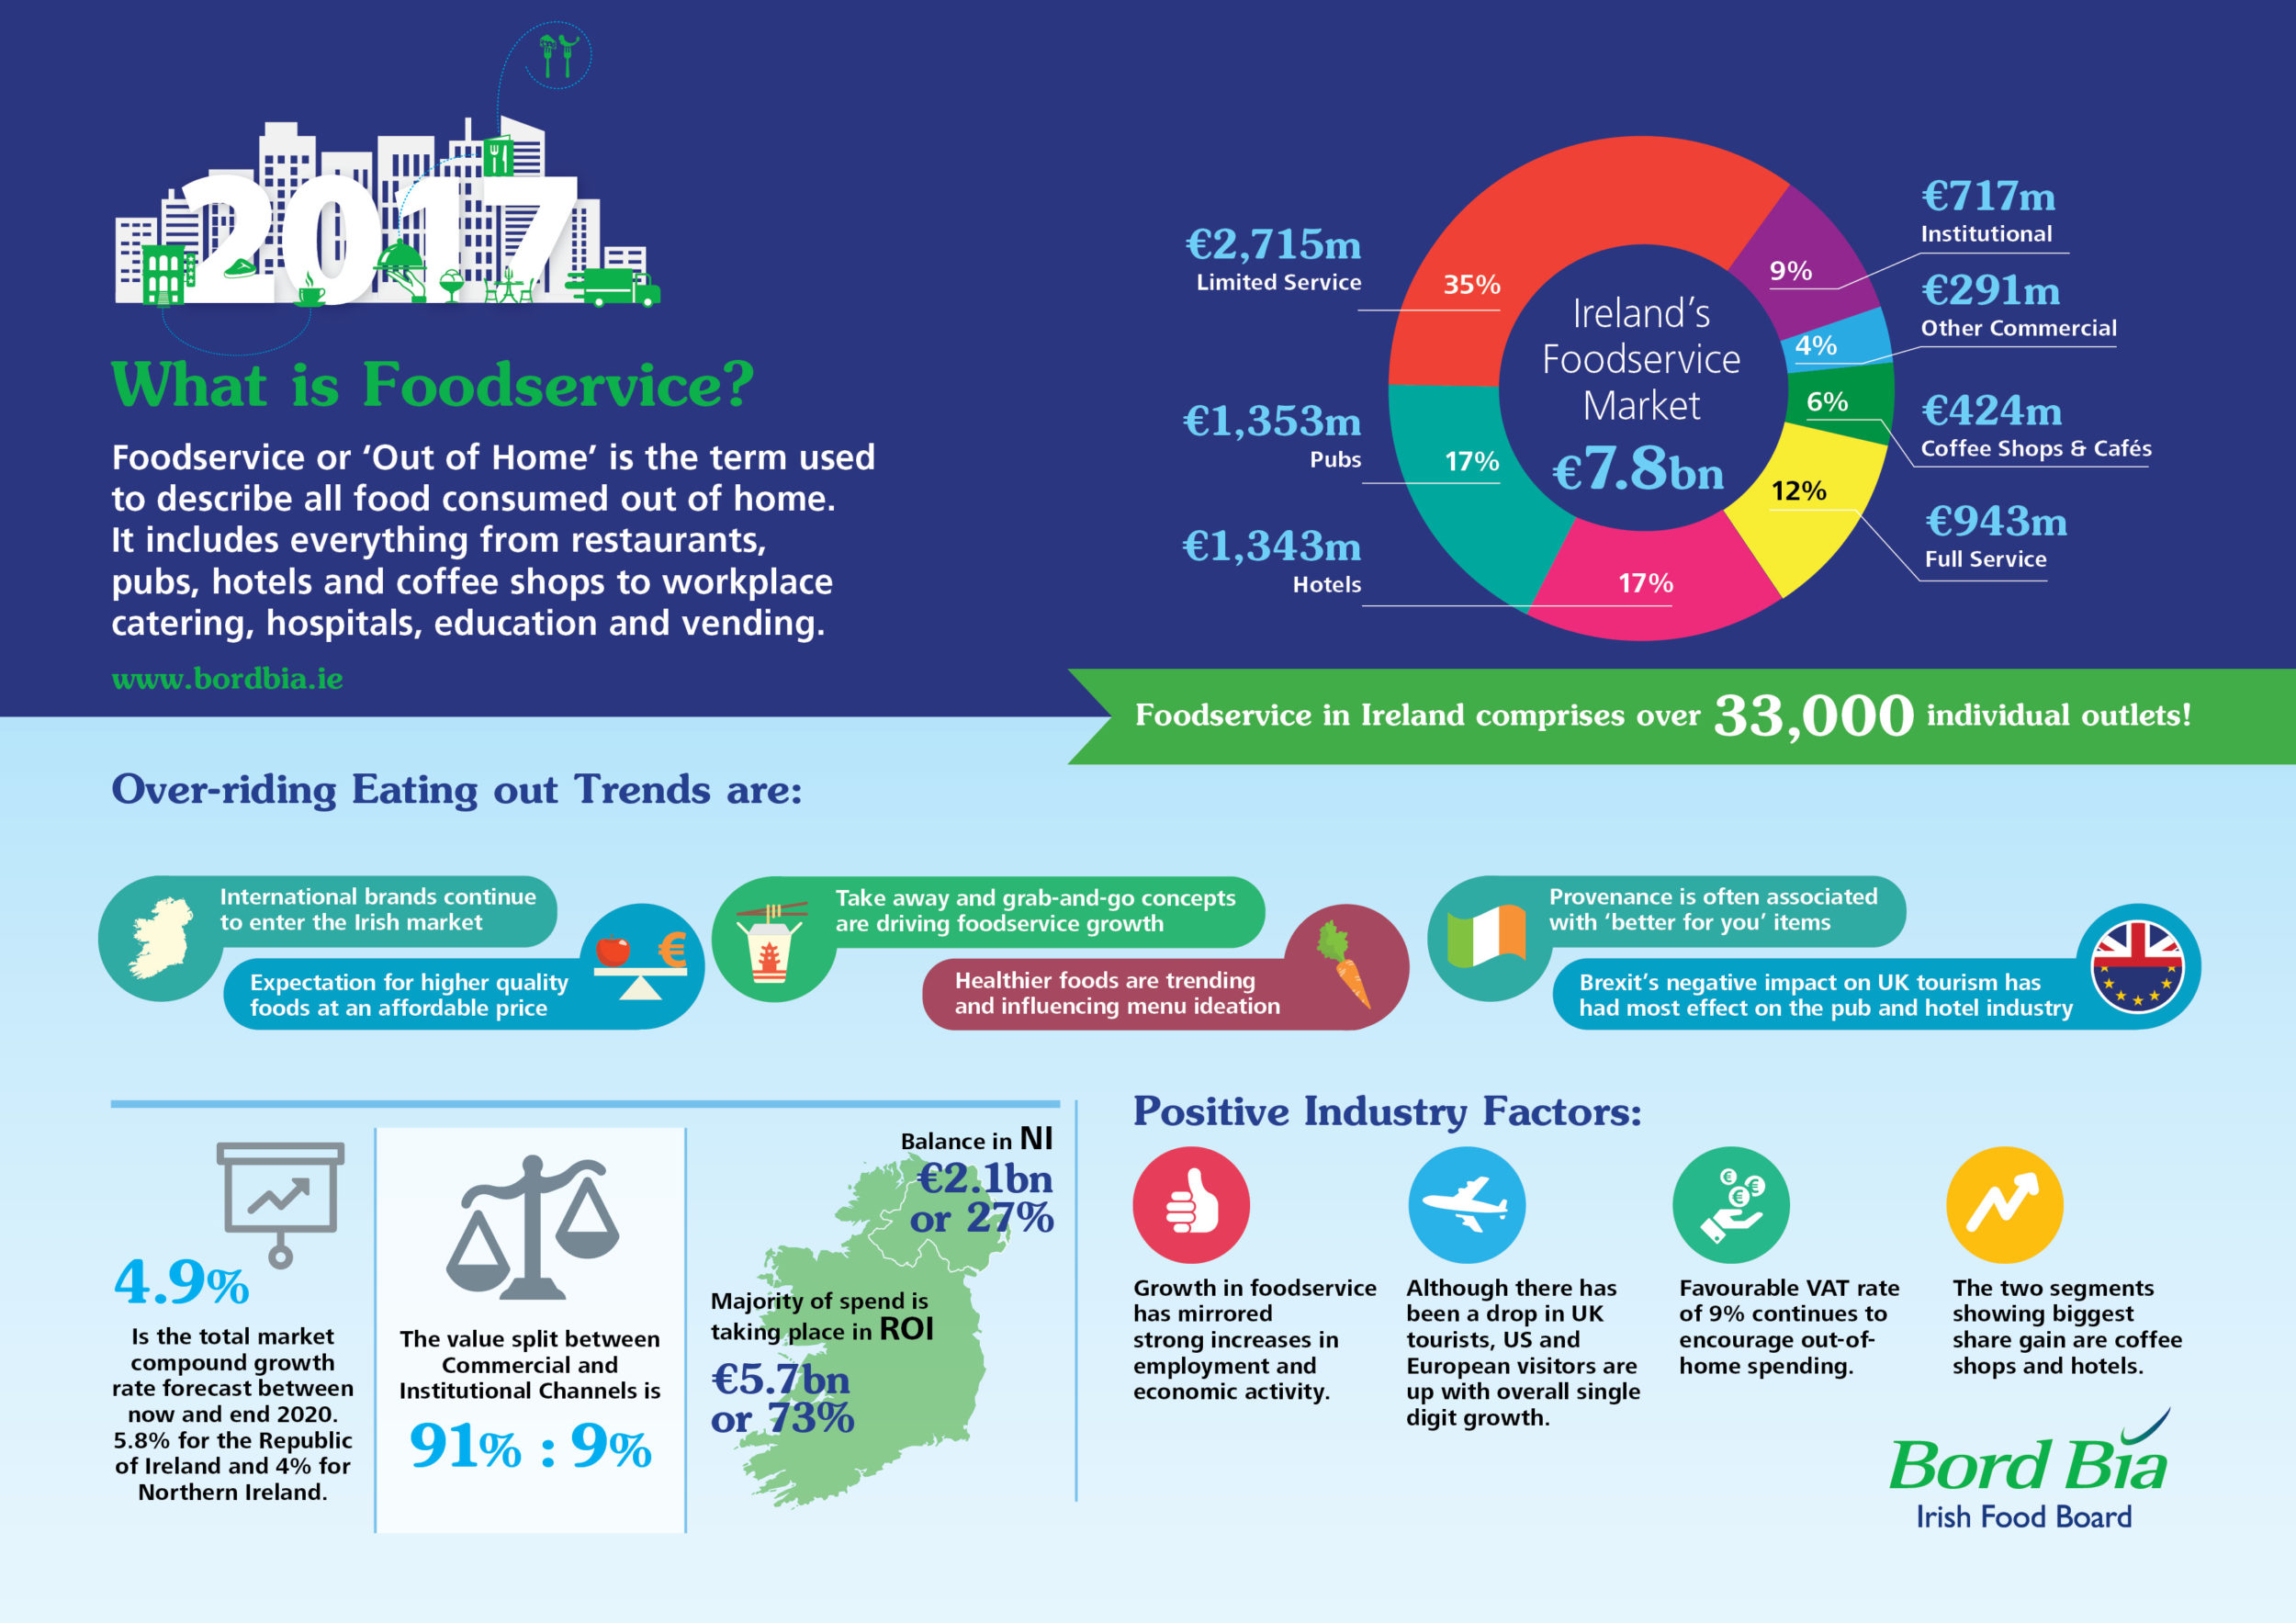 Grab & Go, Healthy Trends Driving Sector | FFT.ie